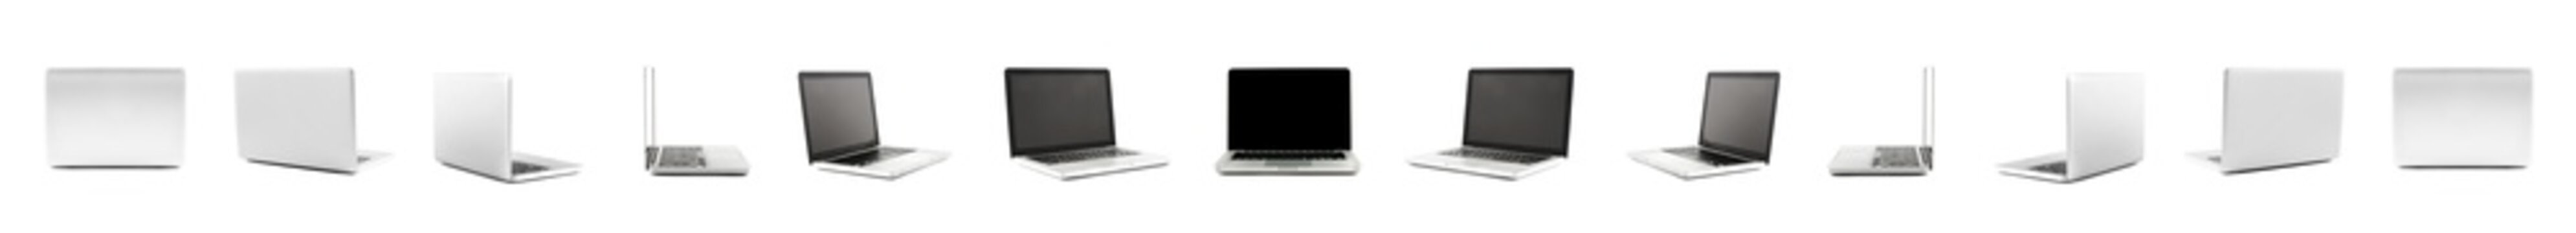 Collection of High definition views of a design laptop